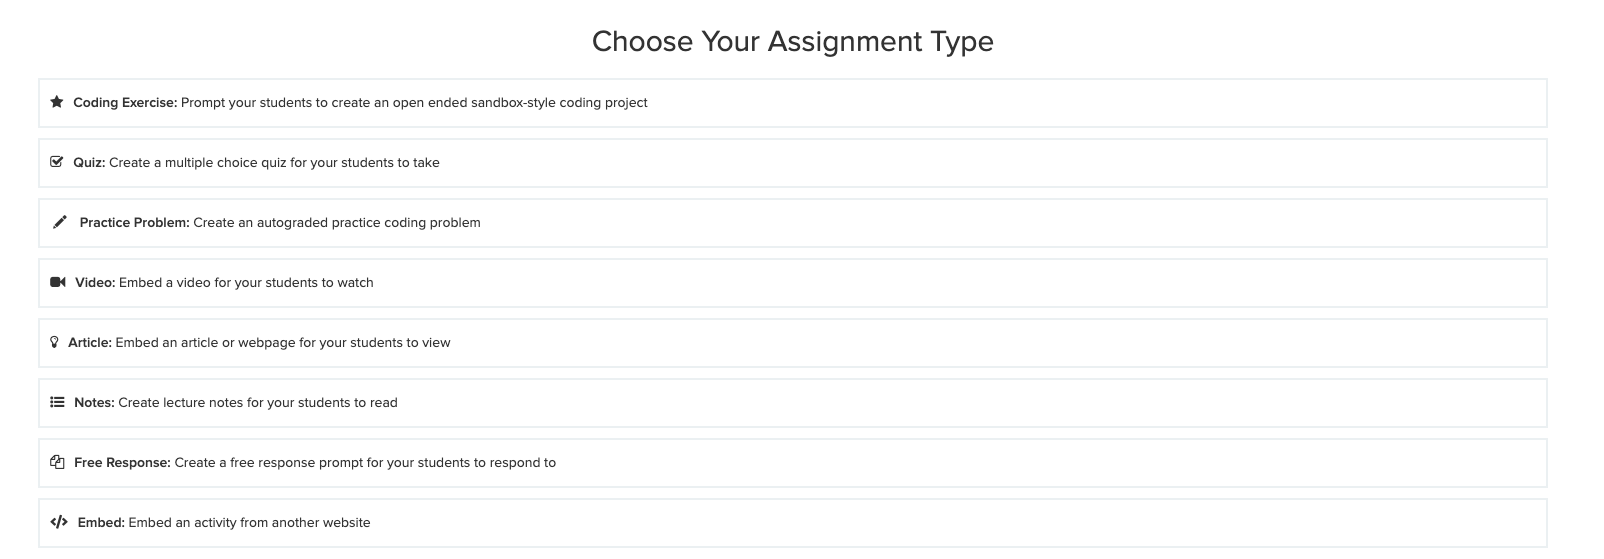 create menu of assignment types